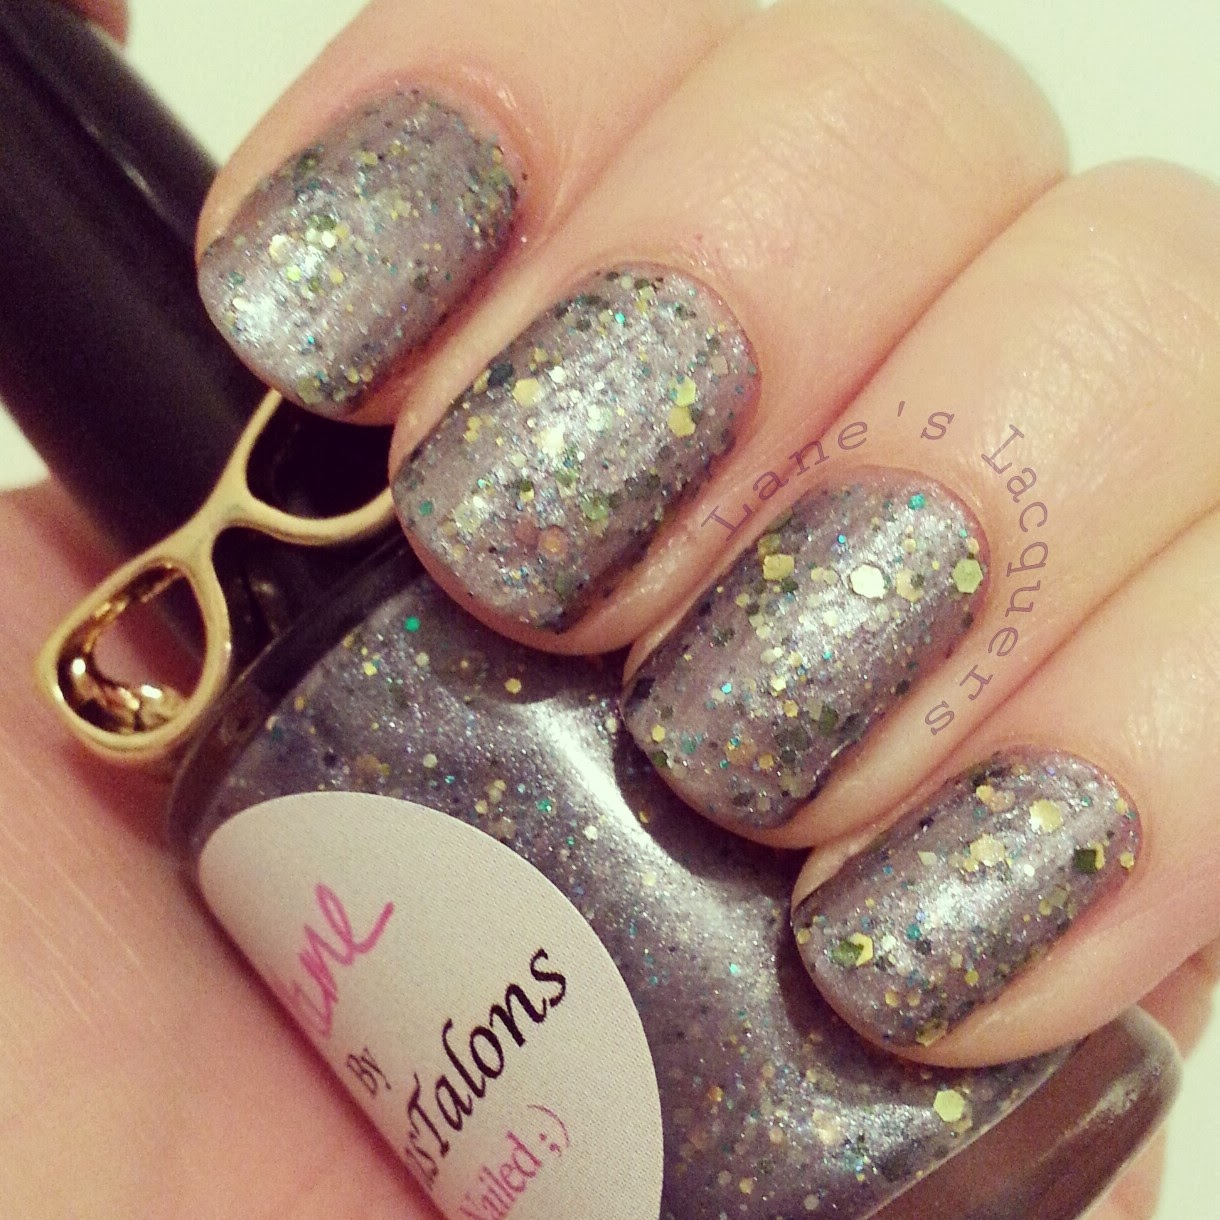 taras-talons-indie-polish-neptune-nails-gold-spectacles-ring